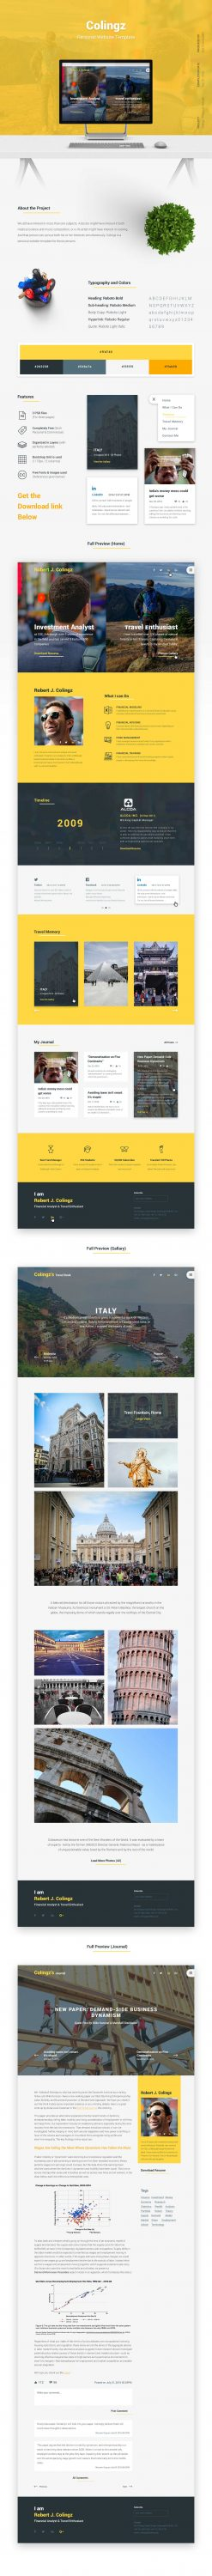 Colingz – Personal Website Template